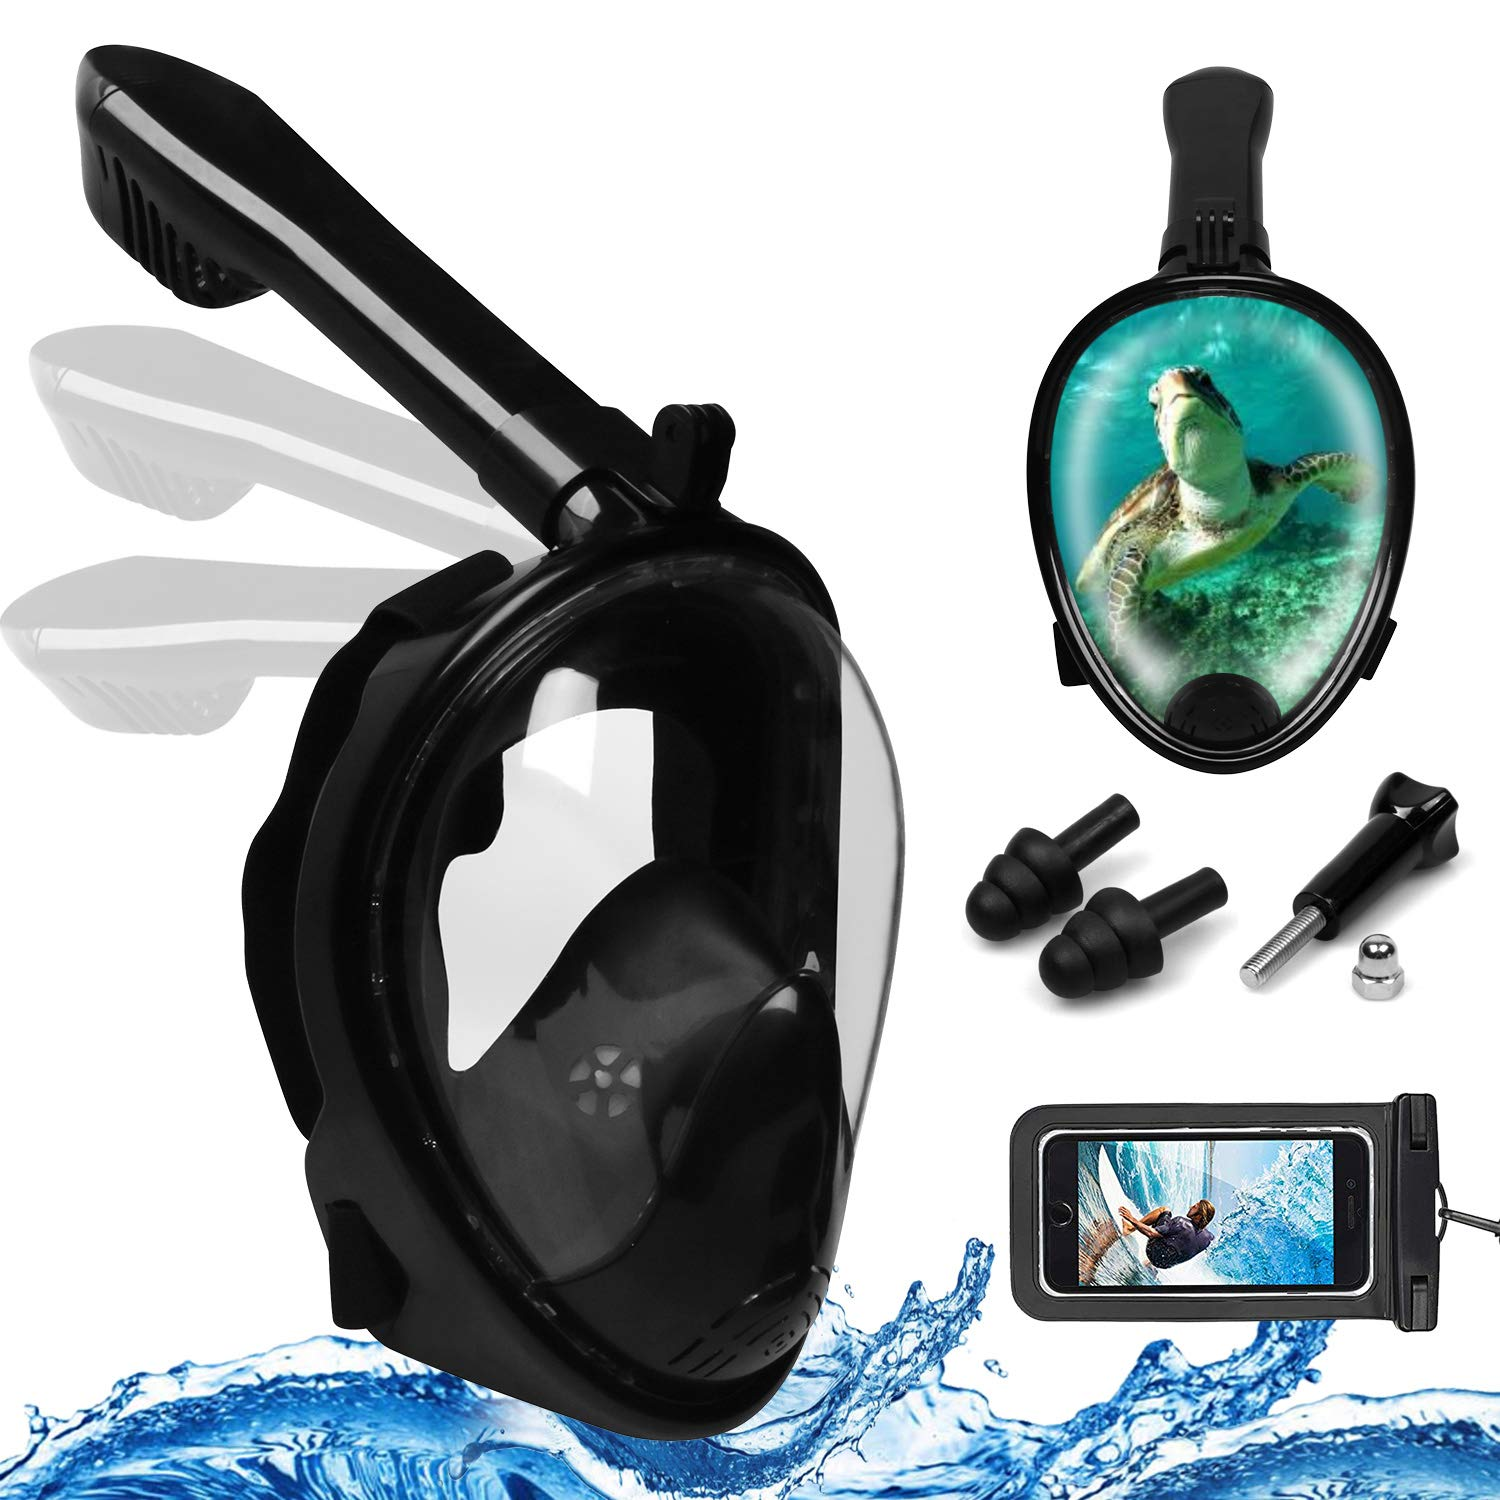 Foldable Full Face Snorkel Mask, 180° Panoramic View Scuba Diving Mask Perfect for Kids Swimming & Adult Diving (S/M, Black)